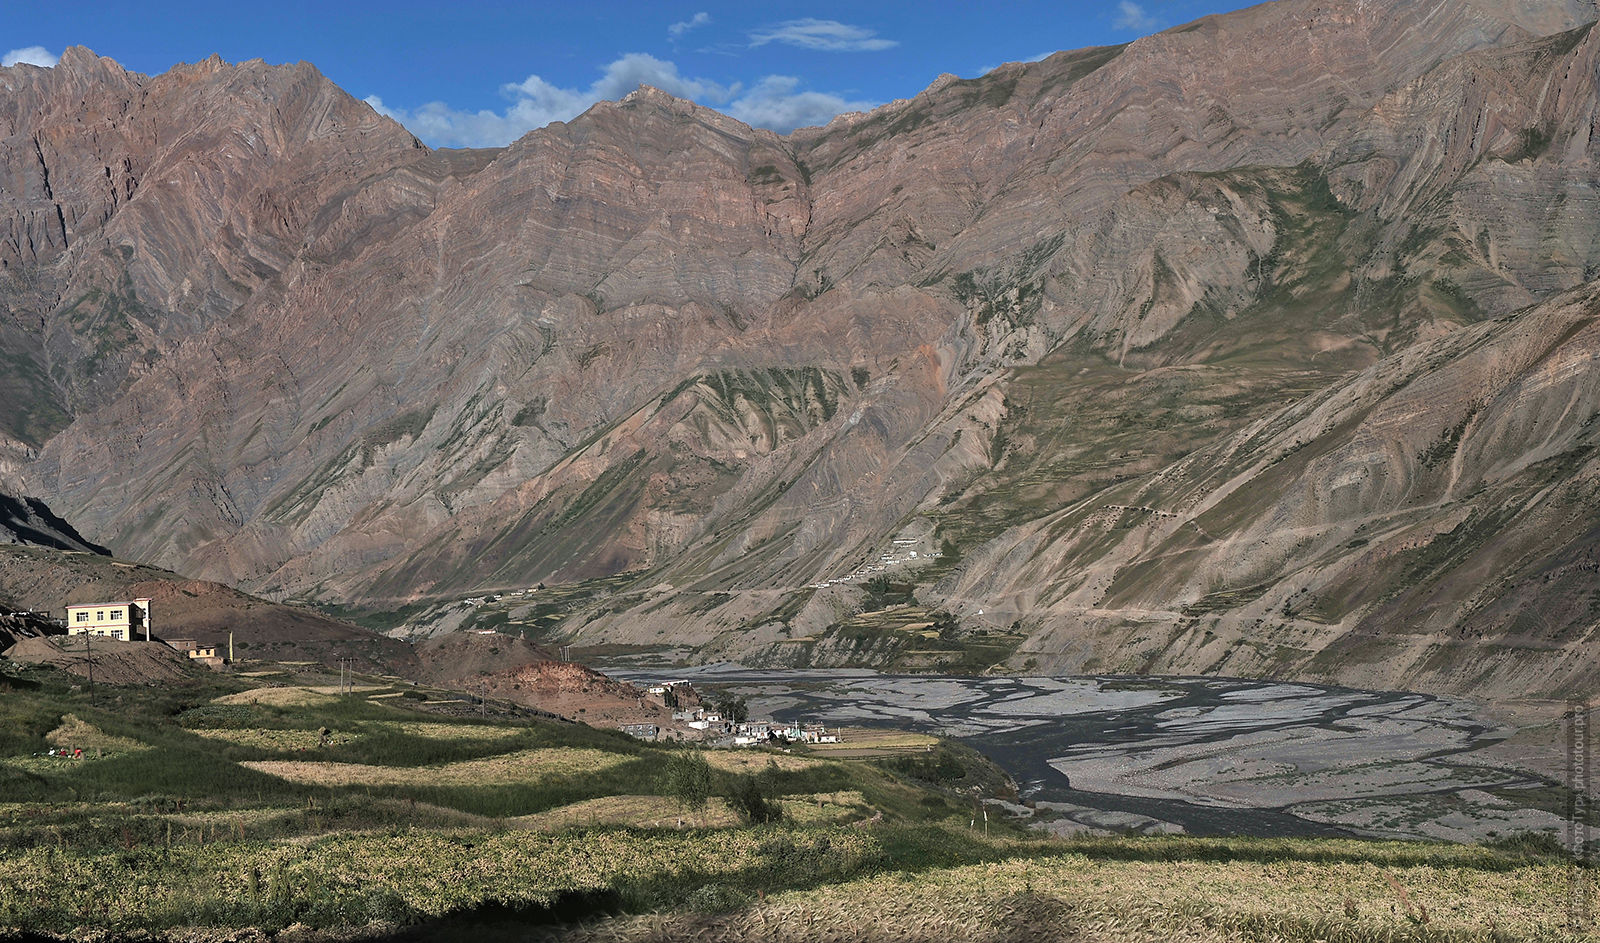 Pin Valley, the area of a Buddhist monastery Kungri Gompa, Spiti Valley. Tour of the Valley of Spiti, in August 2017.